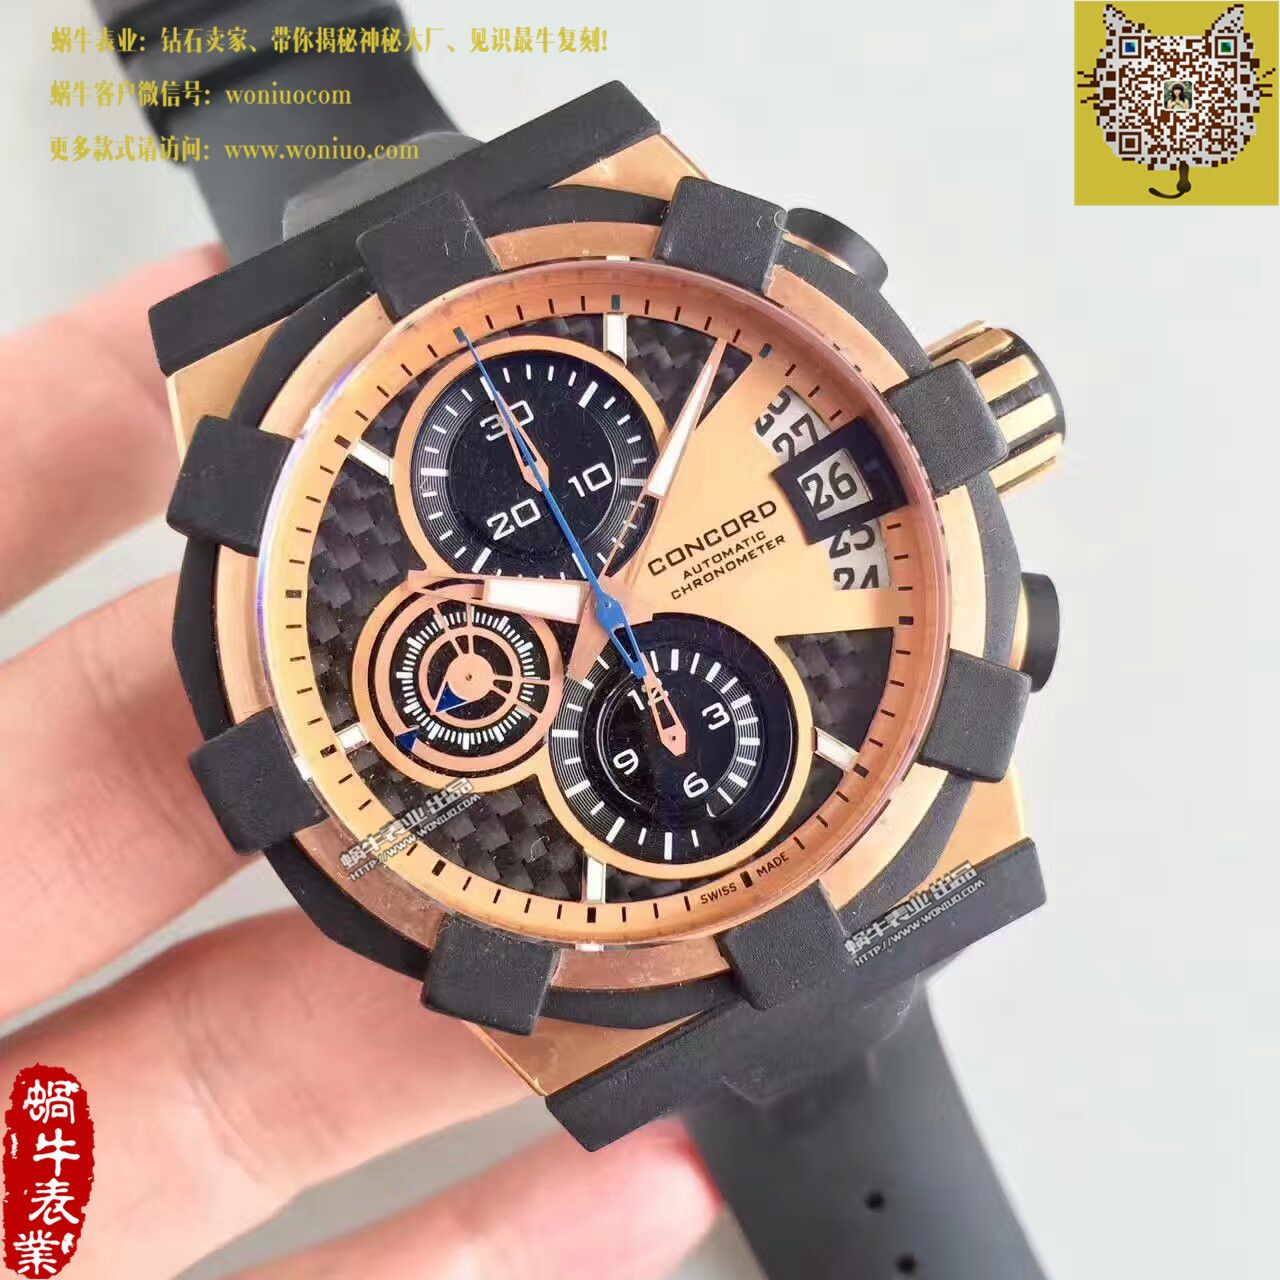 【台湾厂1比1超A高仿手表】君皇C1腕表 Concord C1 Mecatech Chronograph  watch / 君皇02